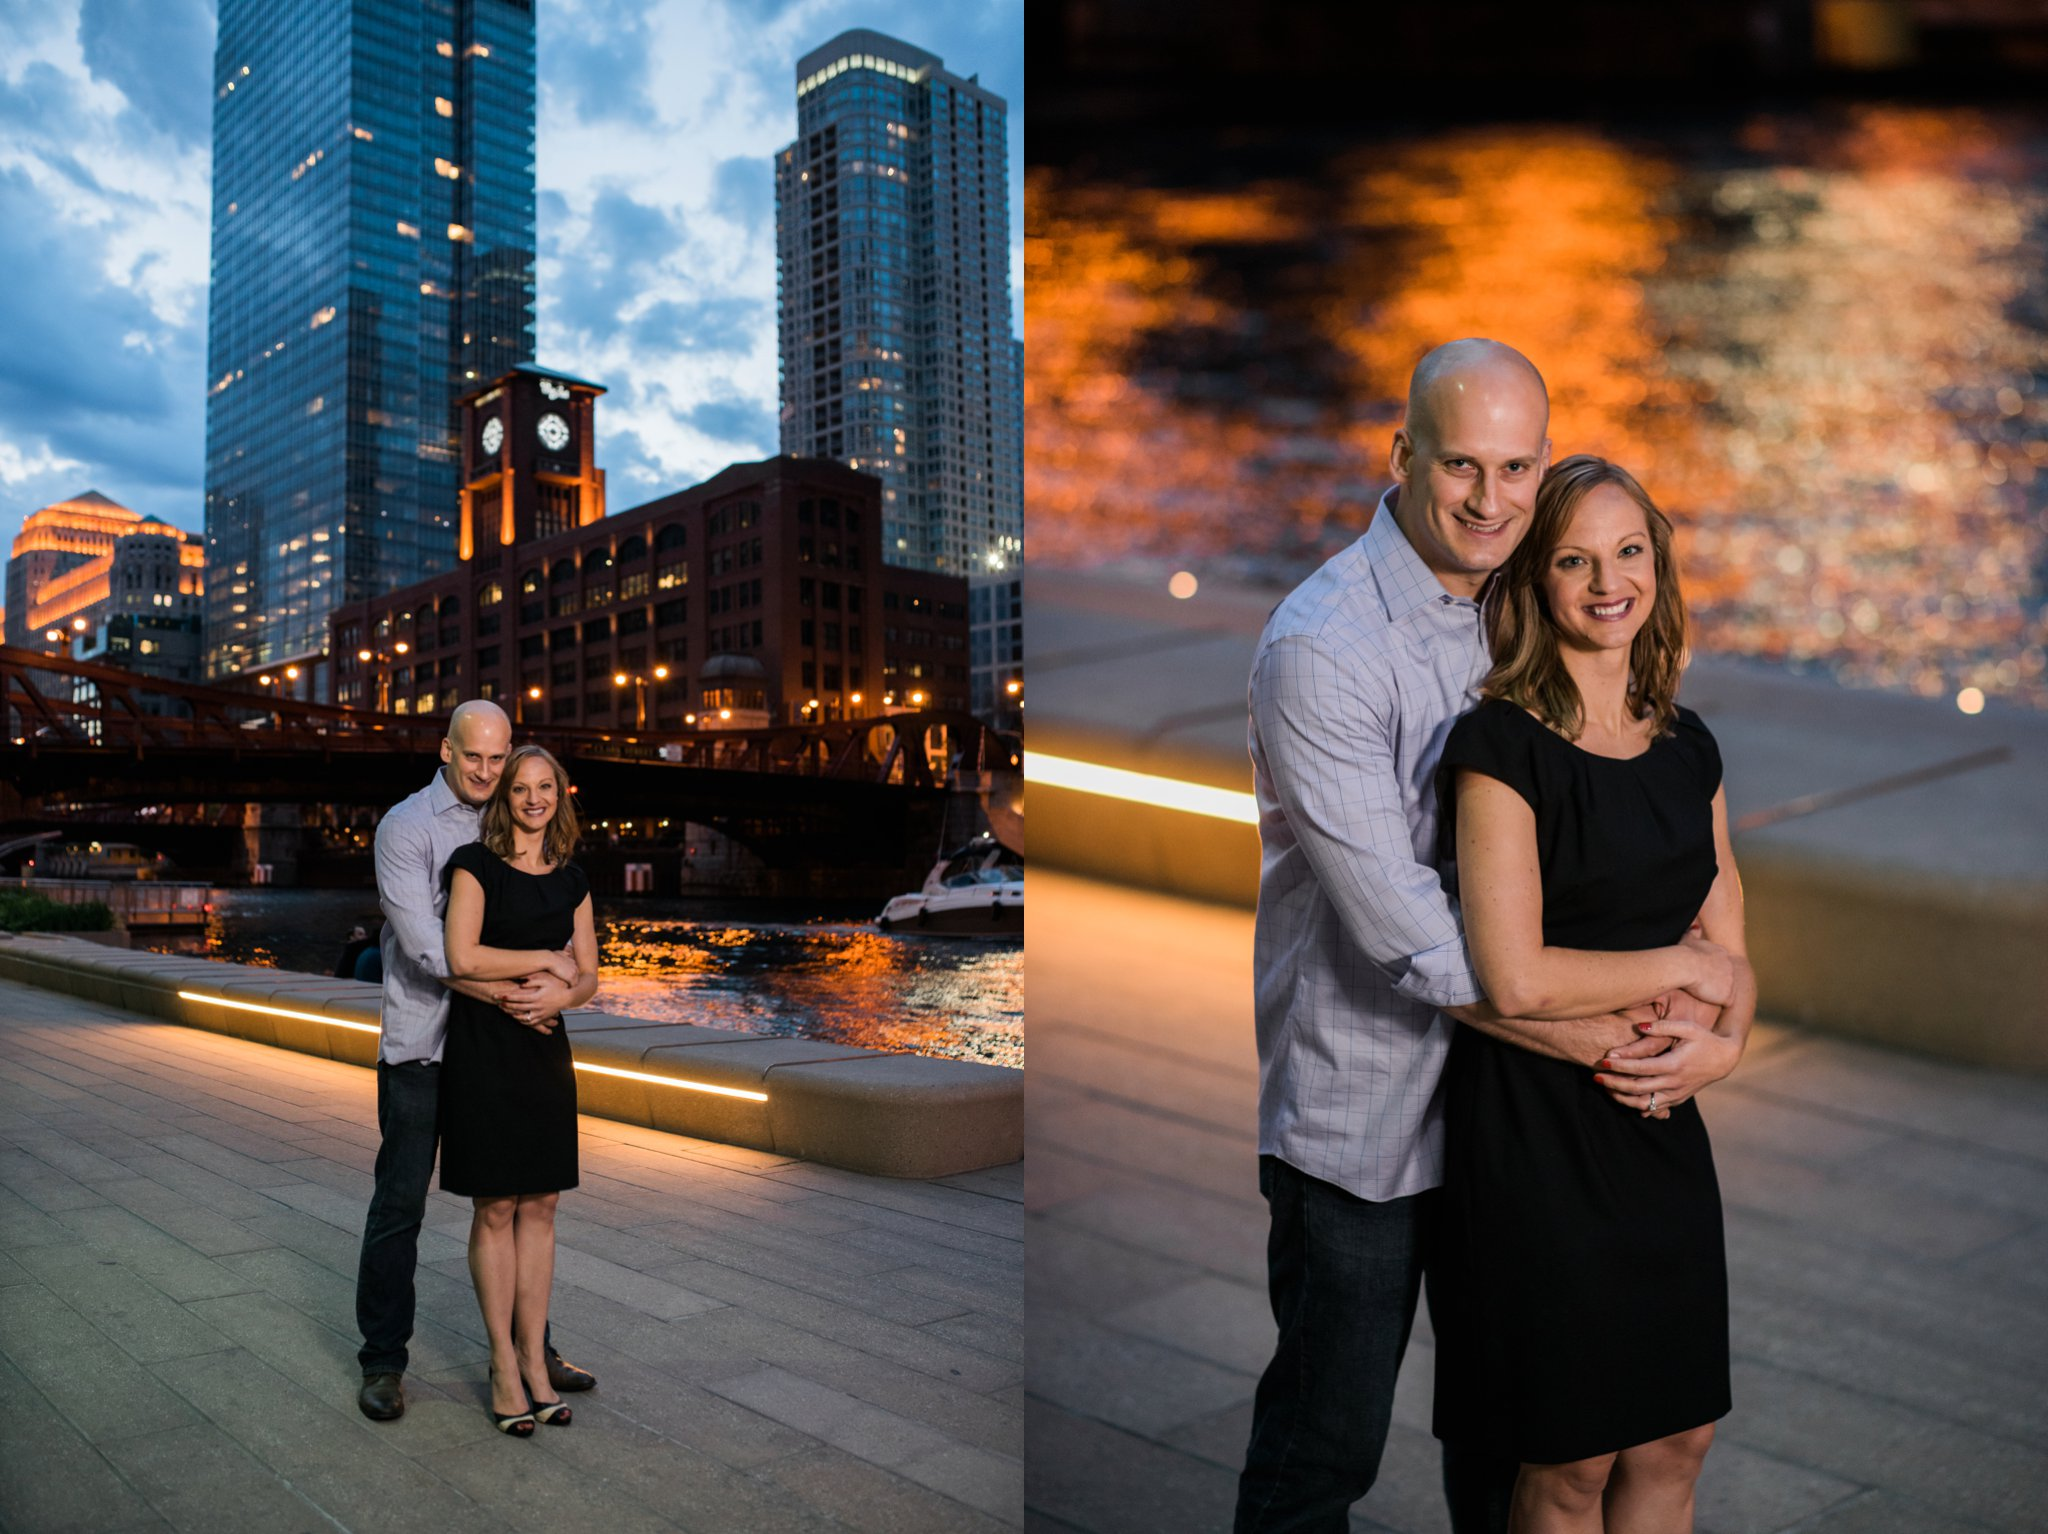 Downtown-Chicago-Loop-Wedding-Photography-114.jpg